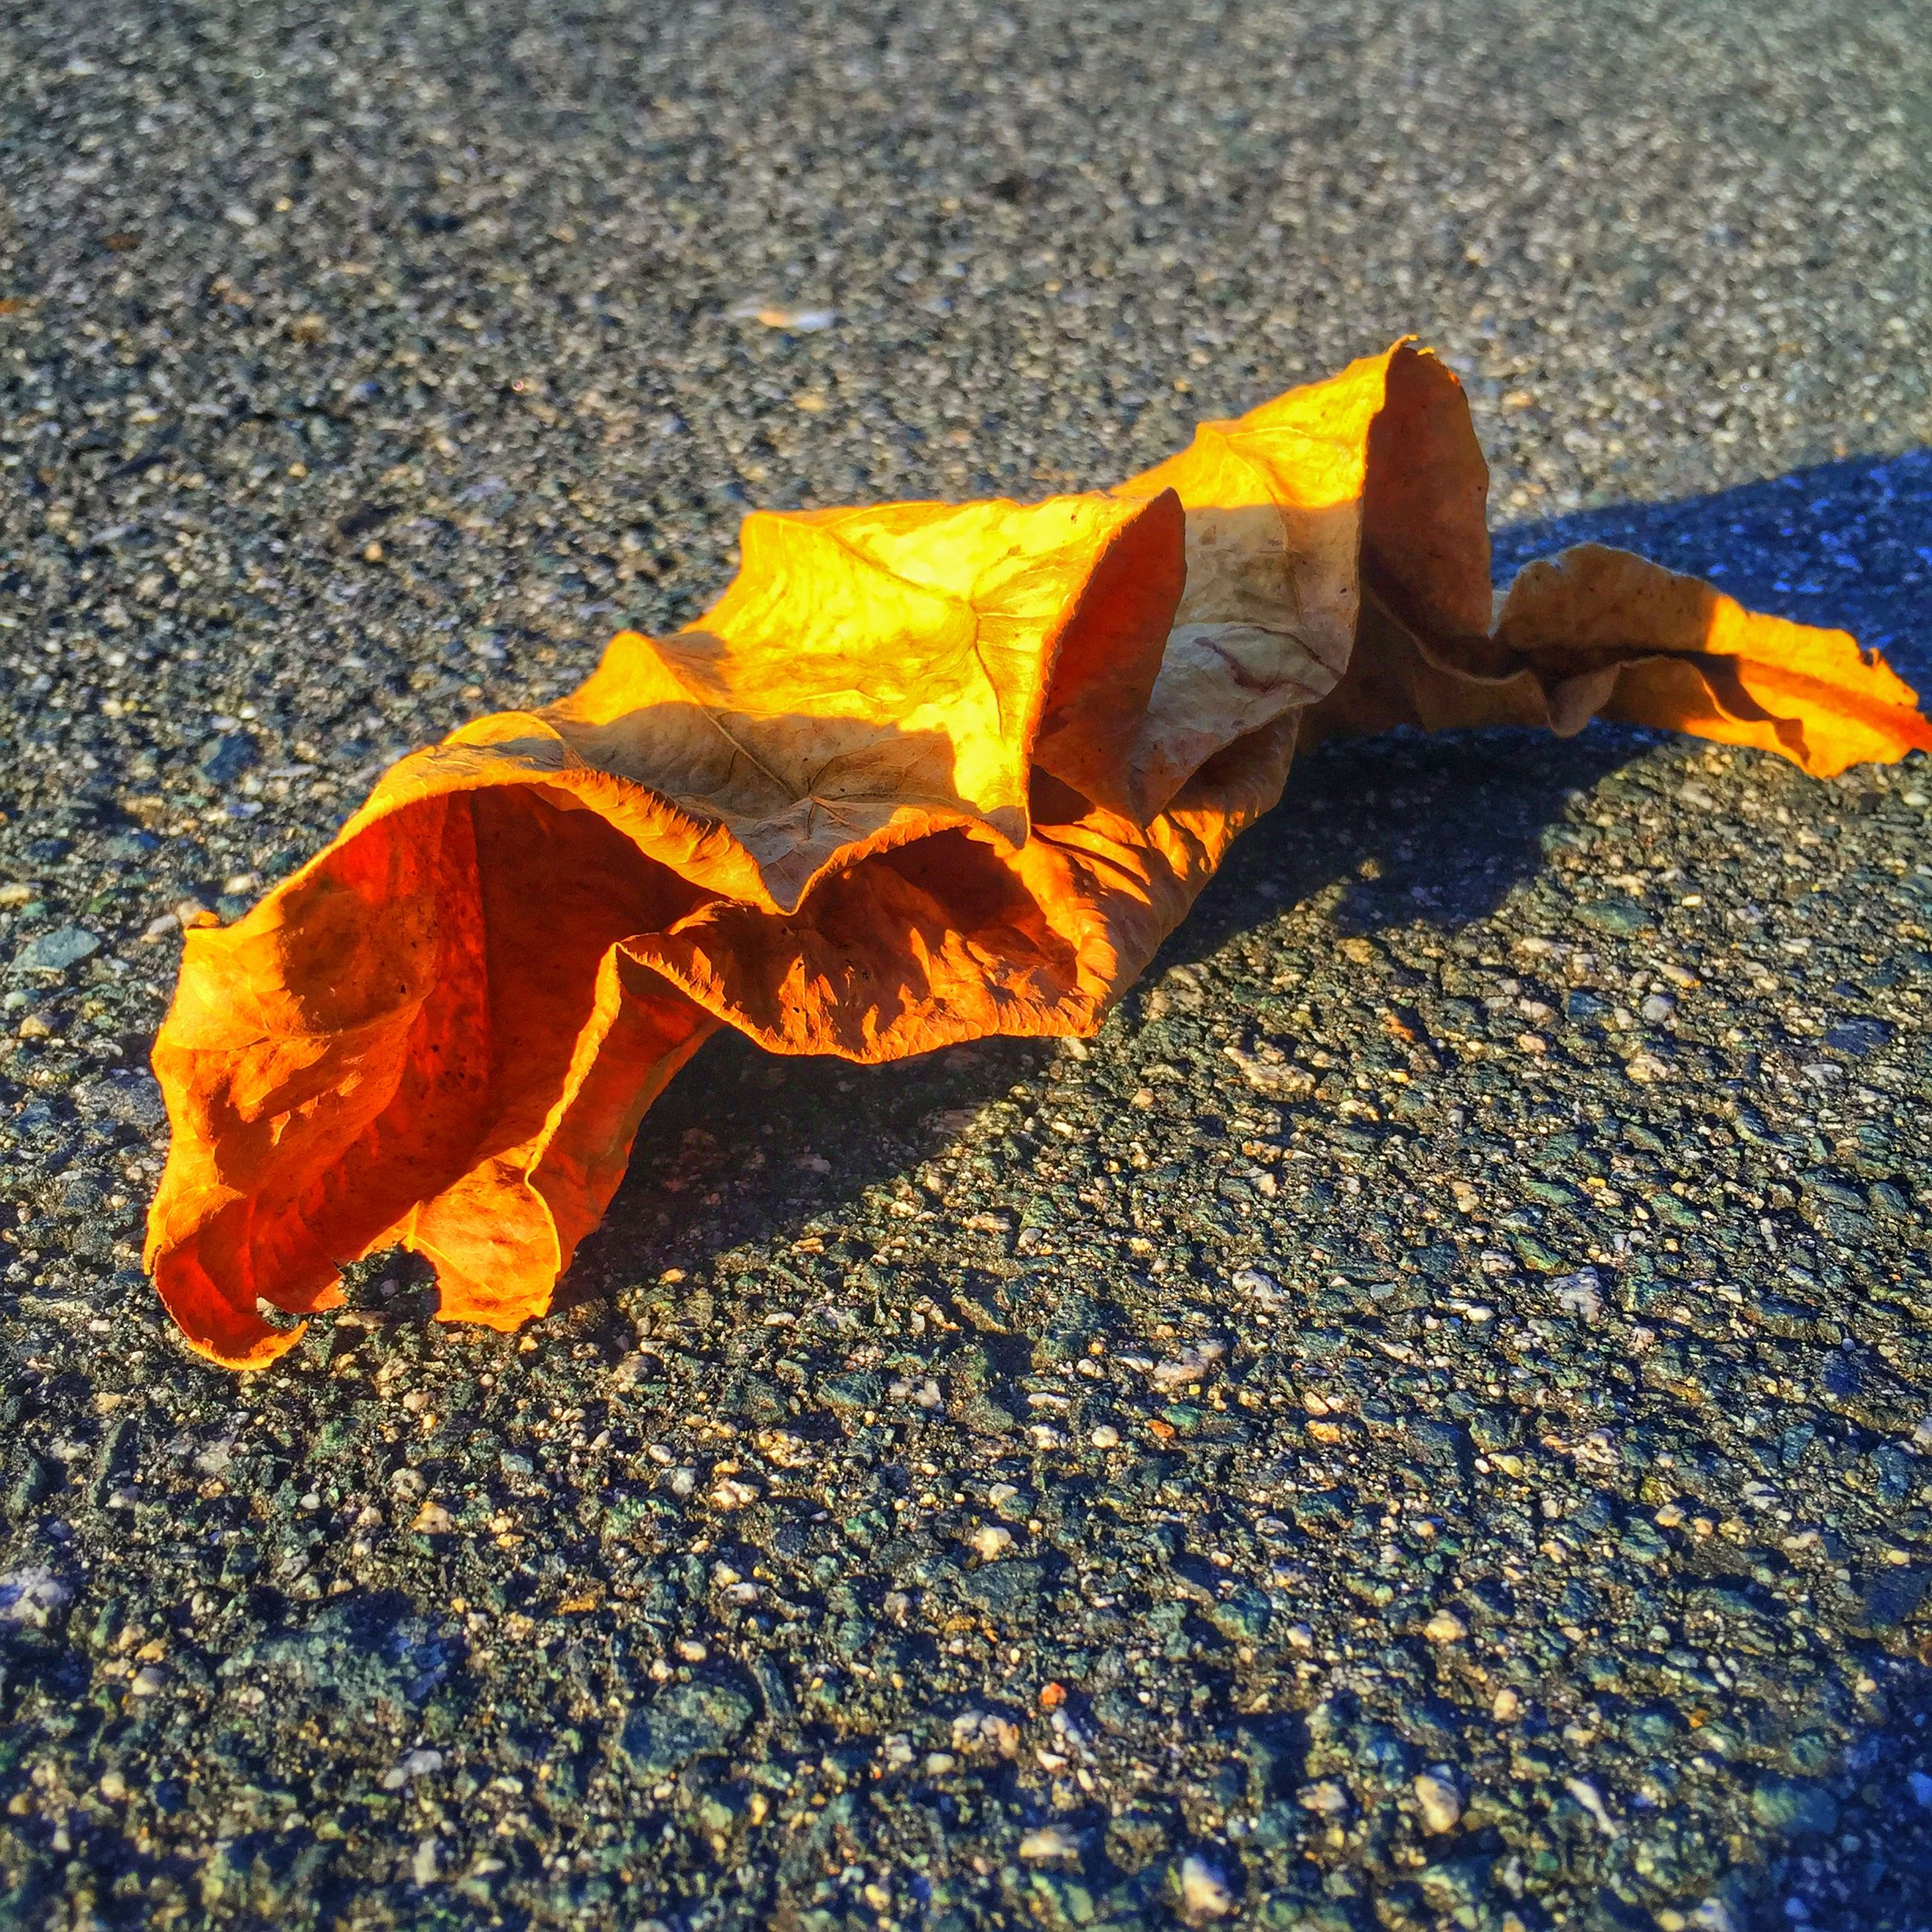 autumn, leaf, change, season, dry, fallen, leaves, yellow, street, asphalt, high angle view, maple leaf, nature, close-up, ground, road, leaf vein, day, outdoors, wet